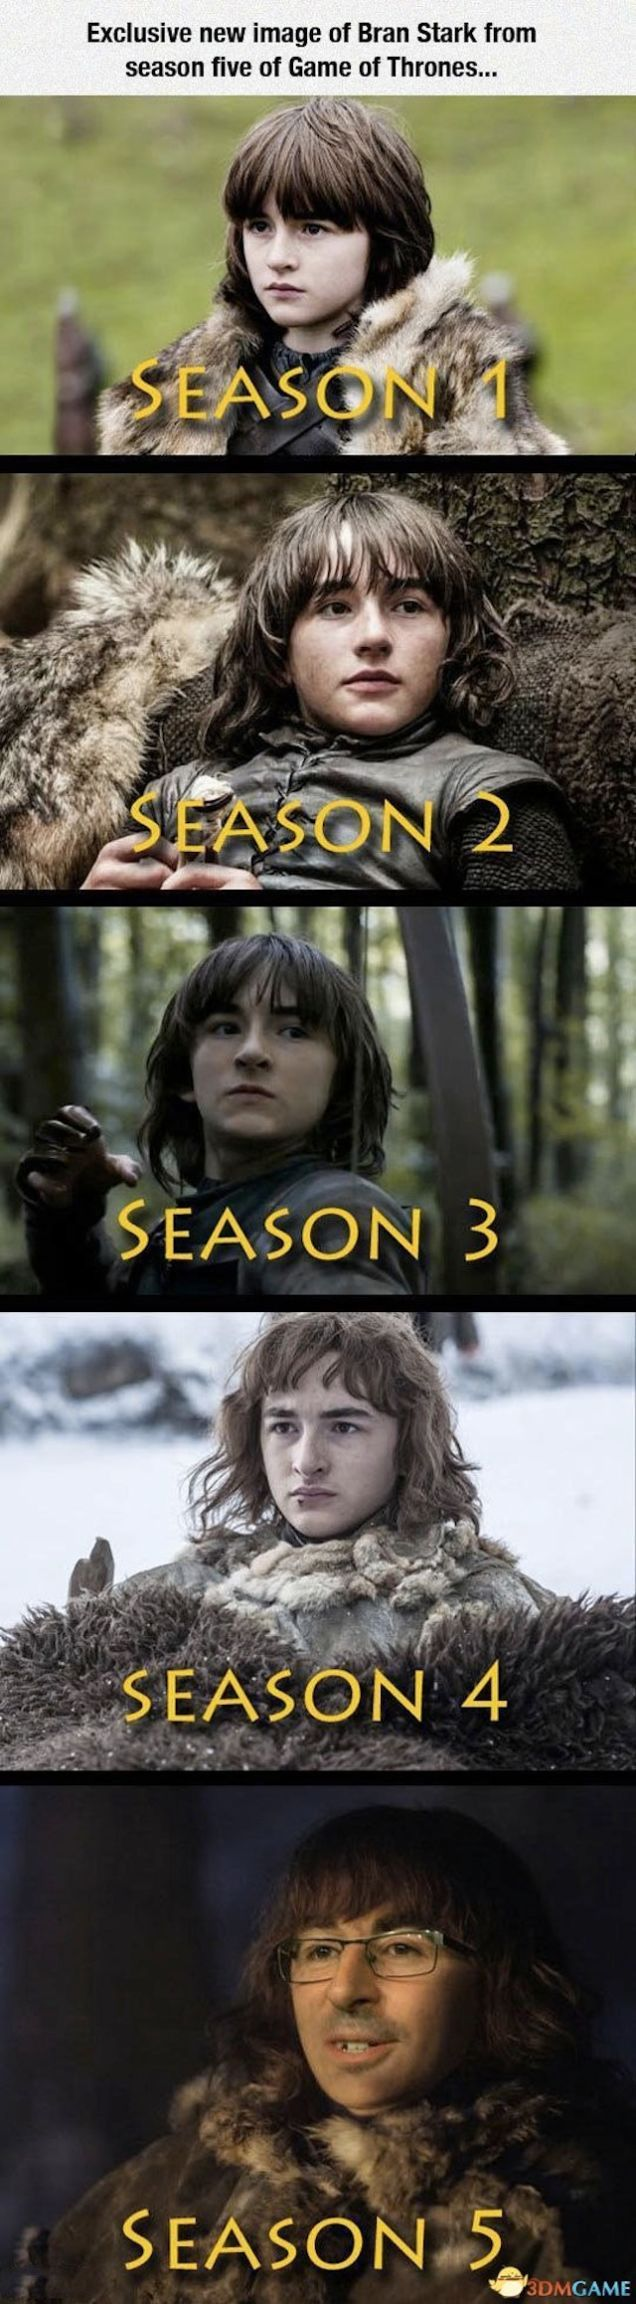 Game Of Thrones Season 5 Definitely Won't Have Bran, And Here's Why